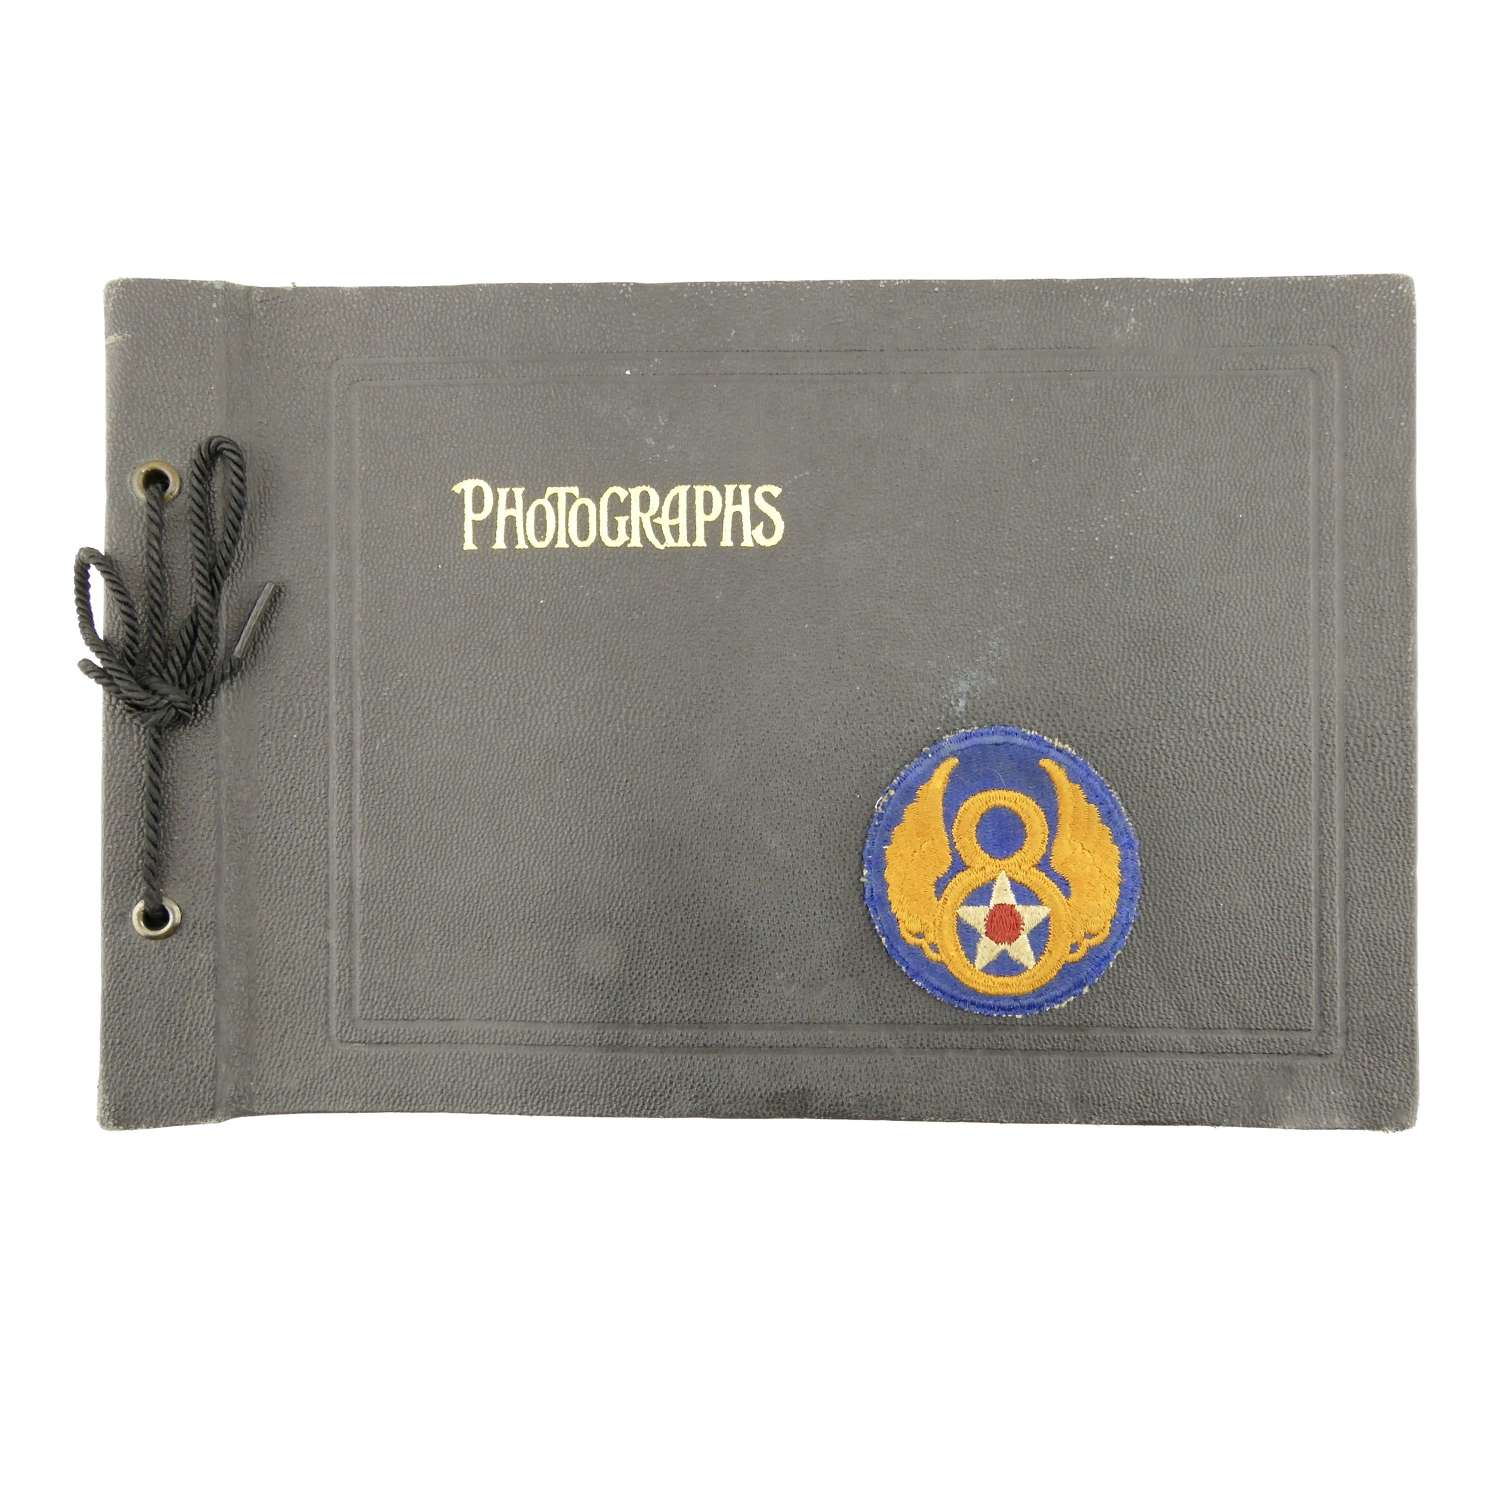 USAAF 8th AAF photograph album, HQ 2nd Bomb Division, Norwich